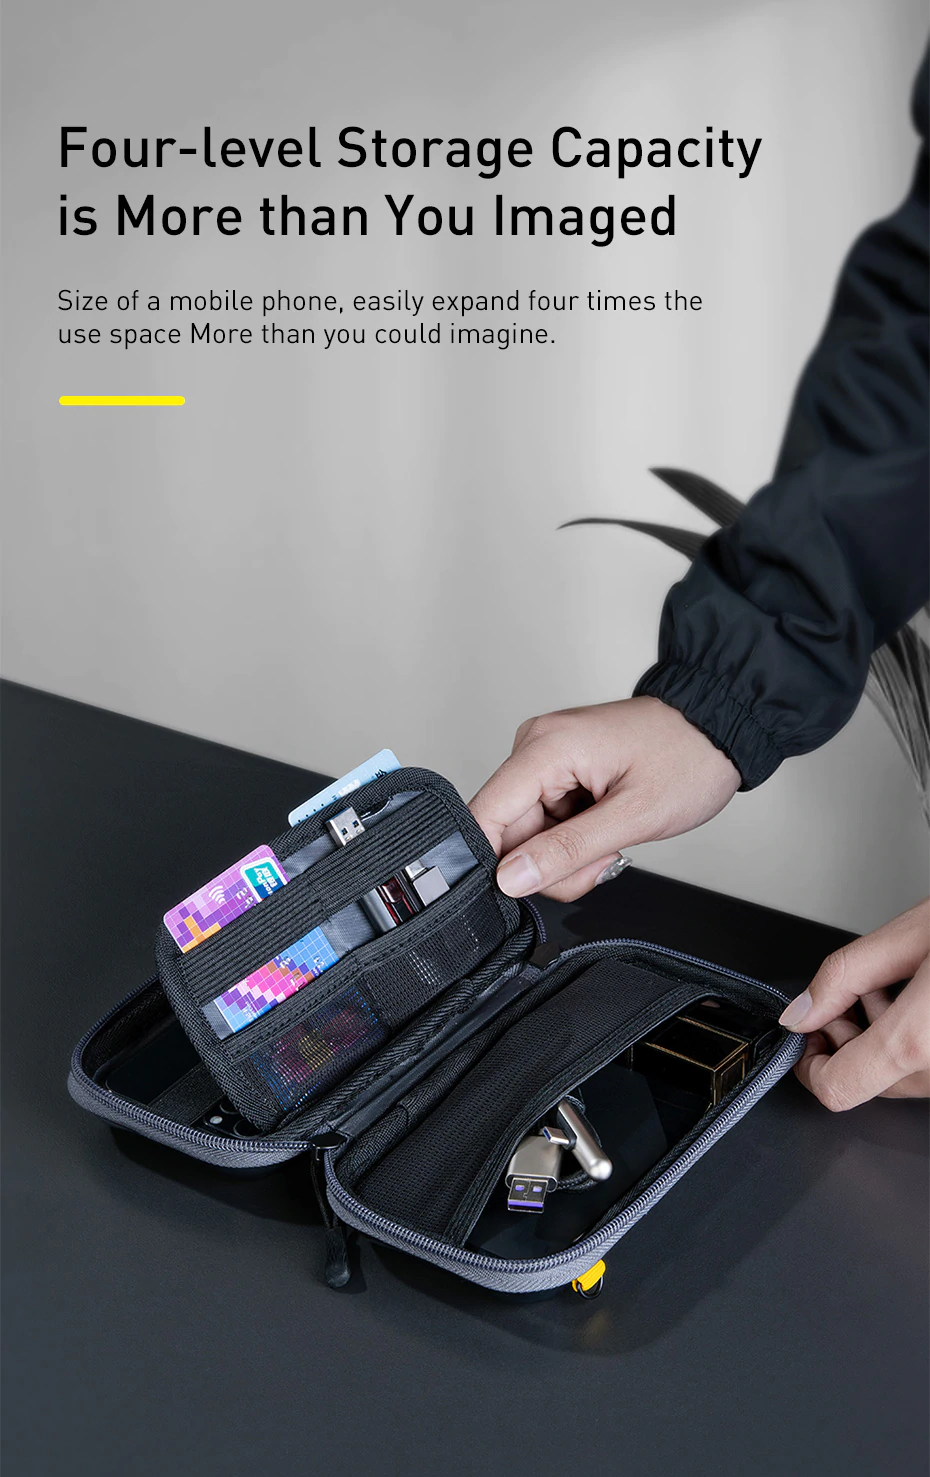 Shock Proof Digital Accessories Storage Bag For iPhone Earphones SD Card USB Cables Anti-Knock Travel Bag For Mobile Gadgets And Devices